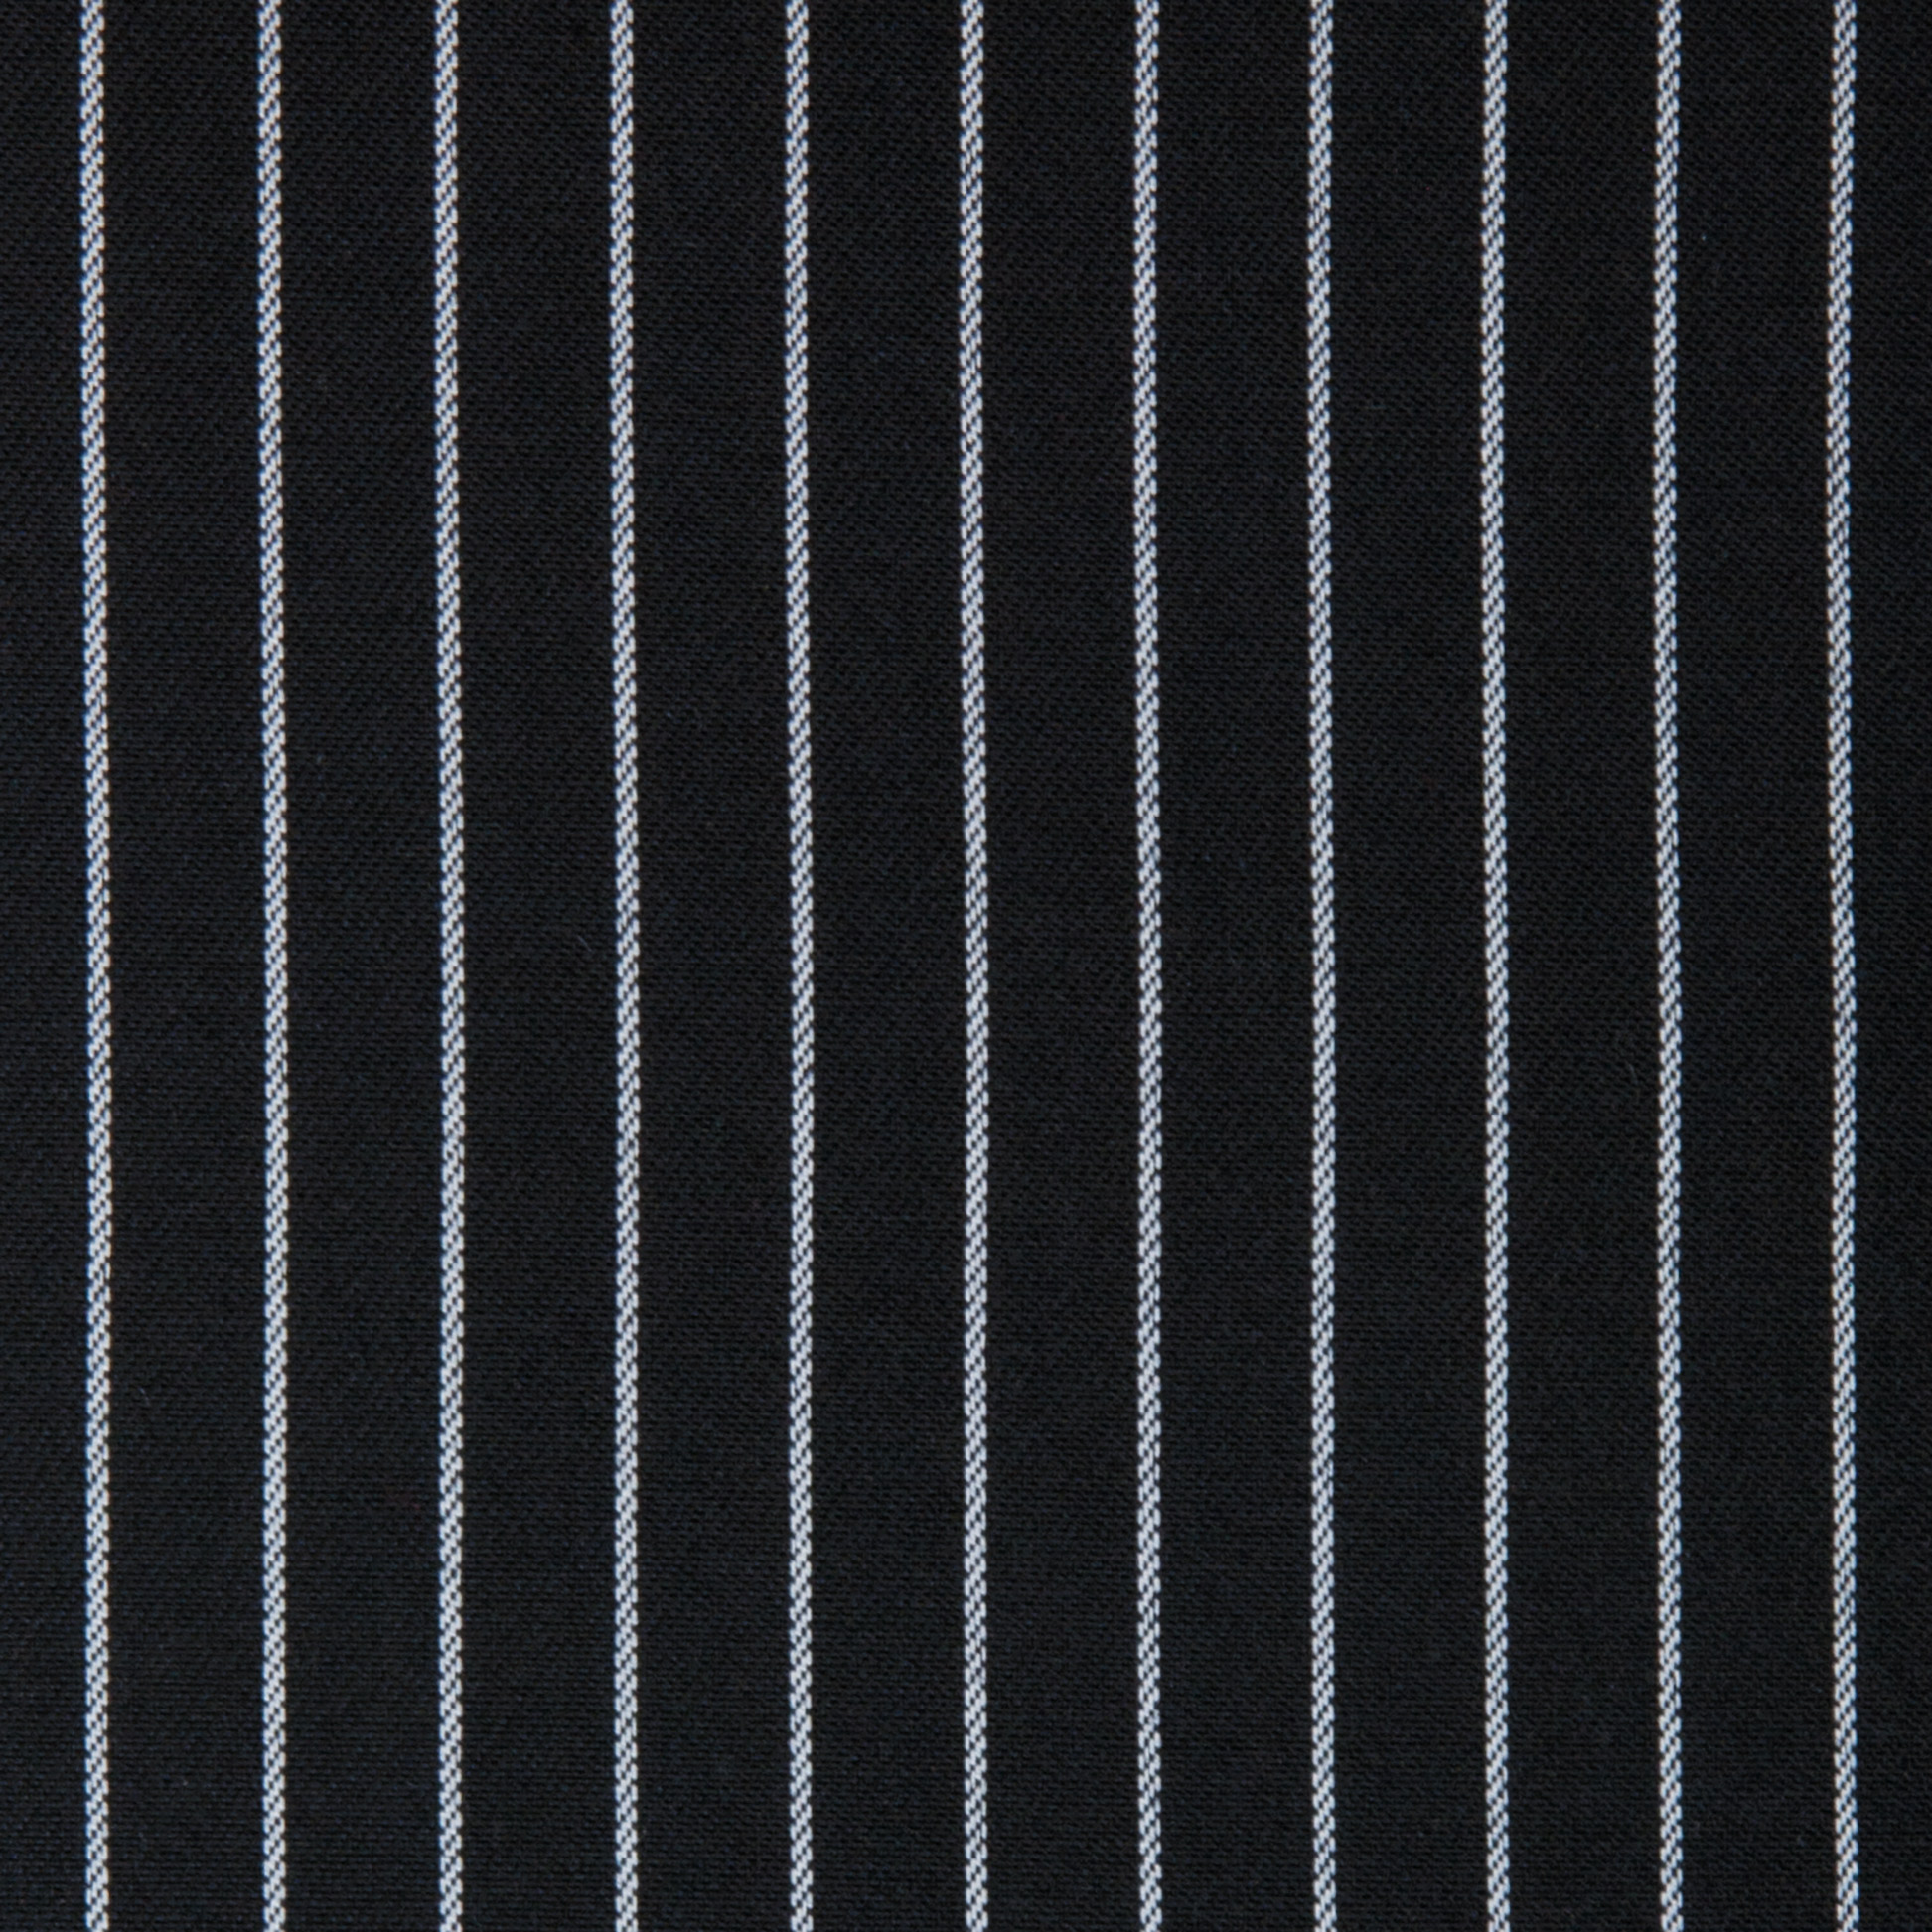 Buy tailor made shirts online - Arturo Collection - Black Pinstripe